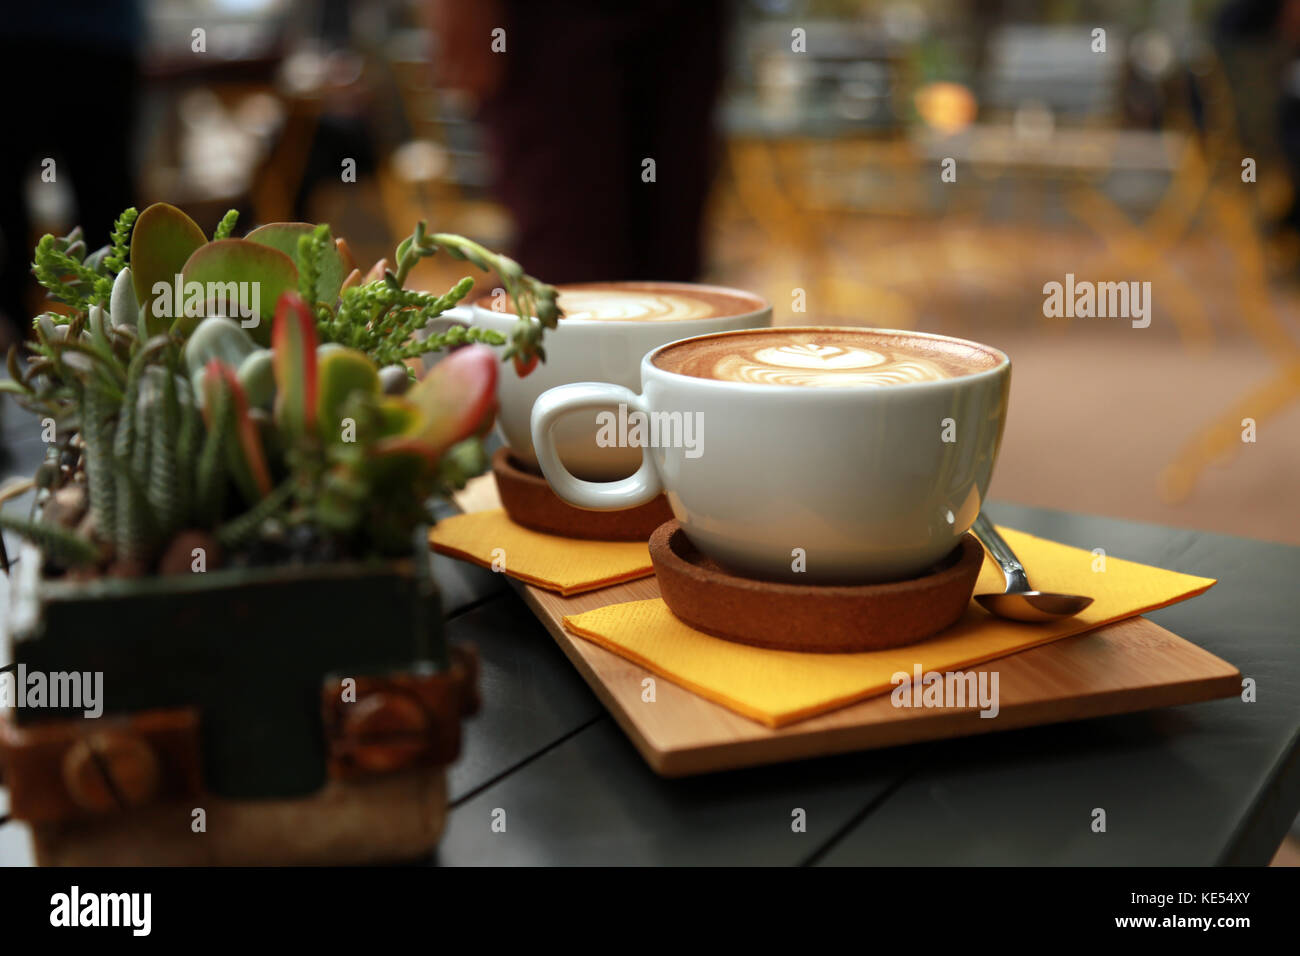 White flat coffee with succulent plant on the table. - Stock Image